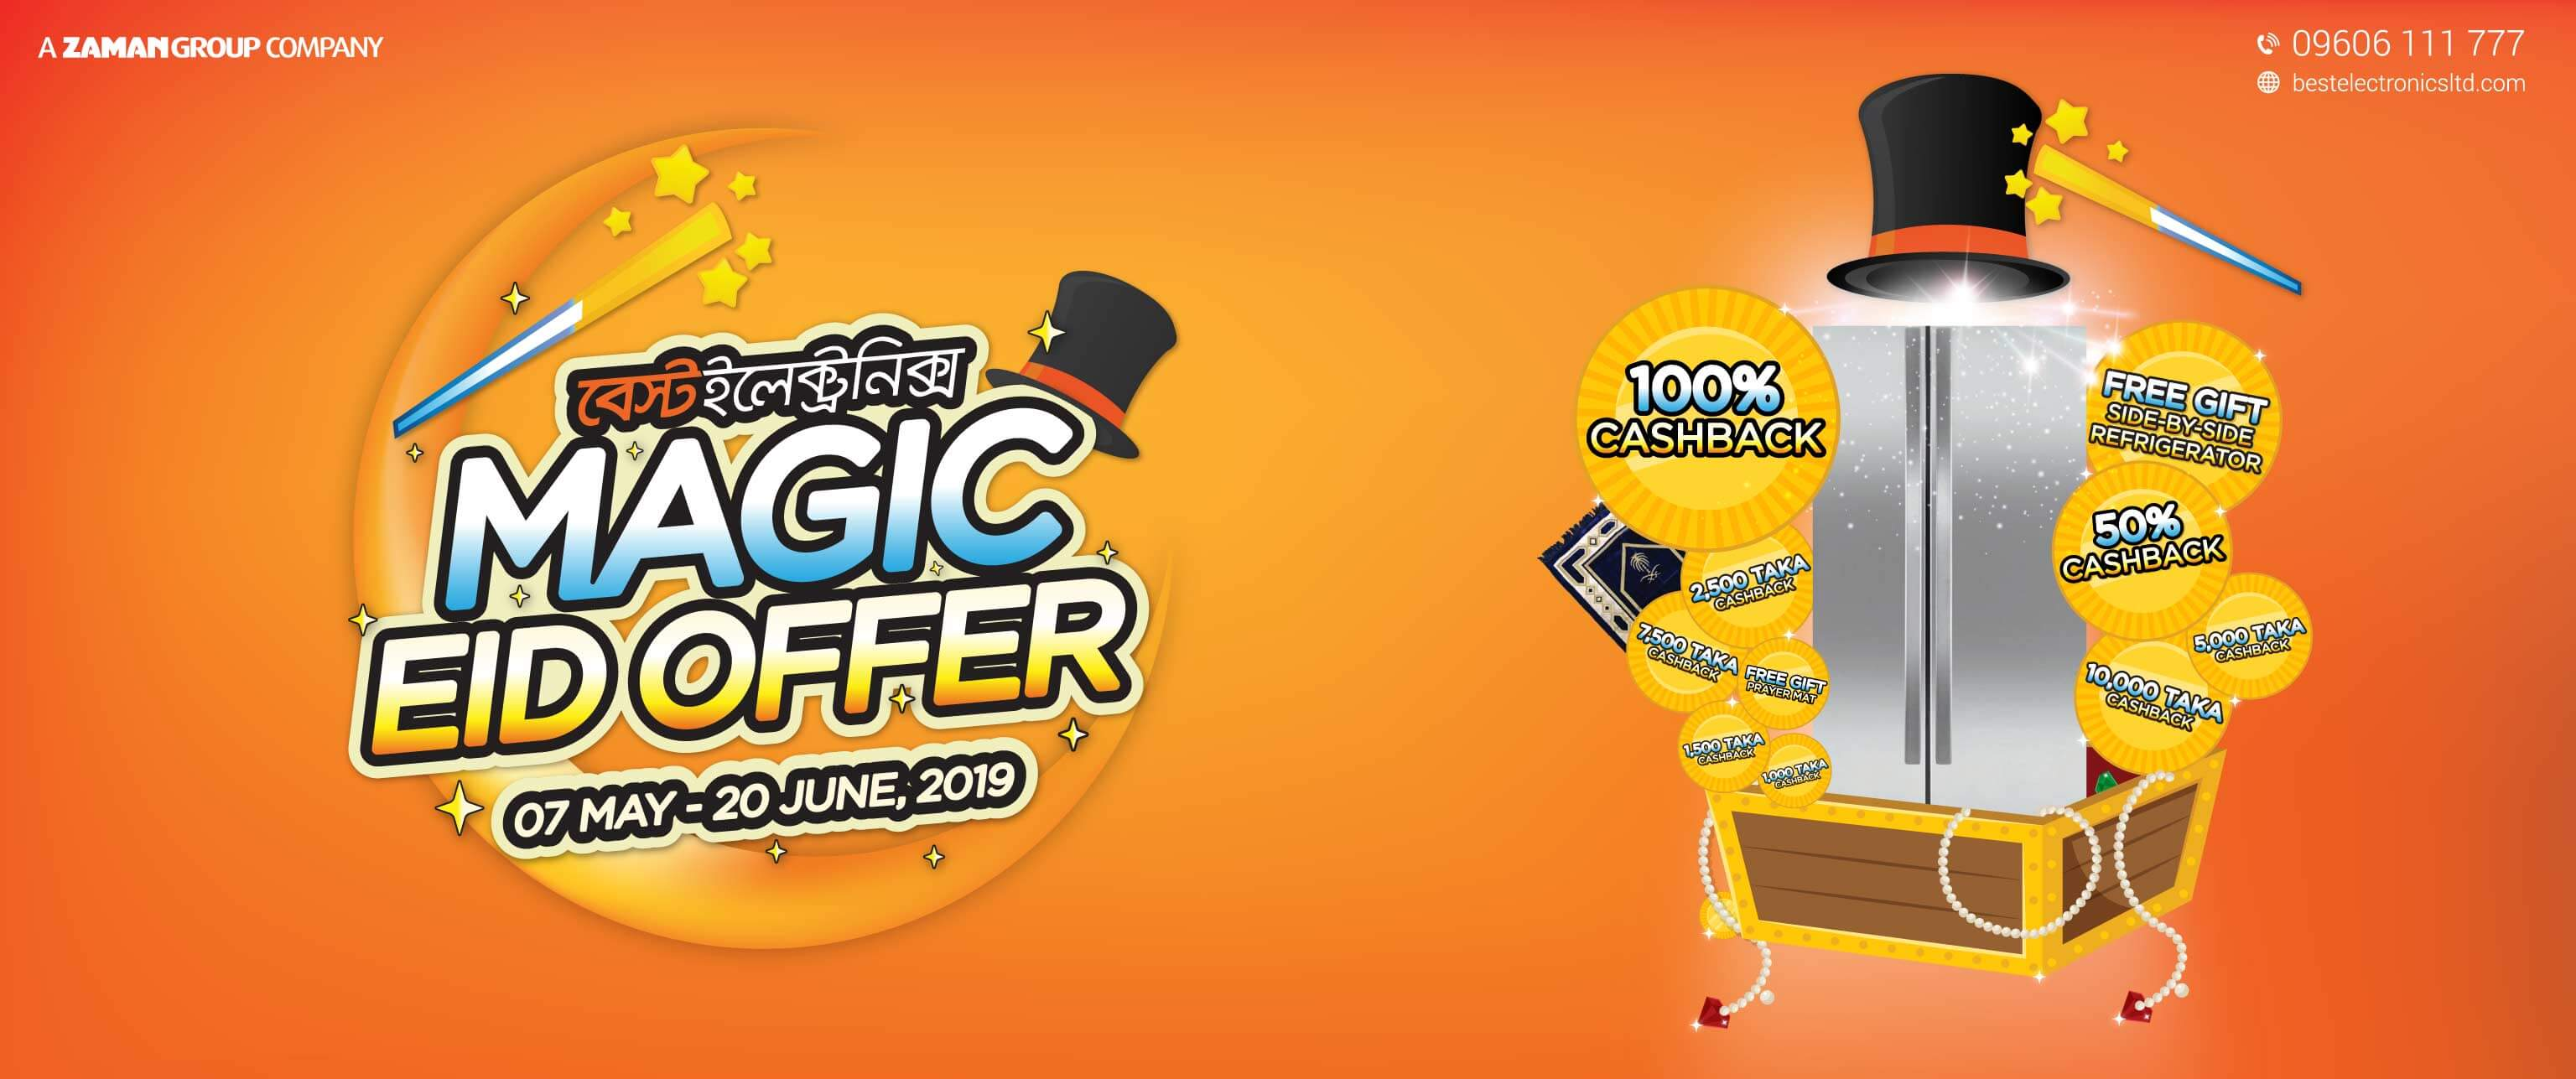 Website-bannar-of-Eid-Magic-offer-campign